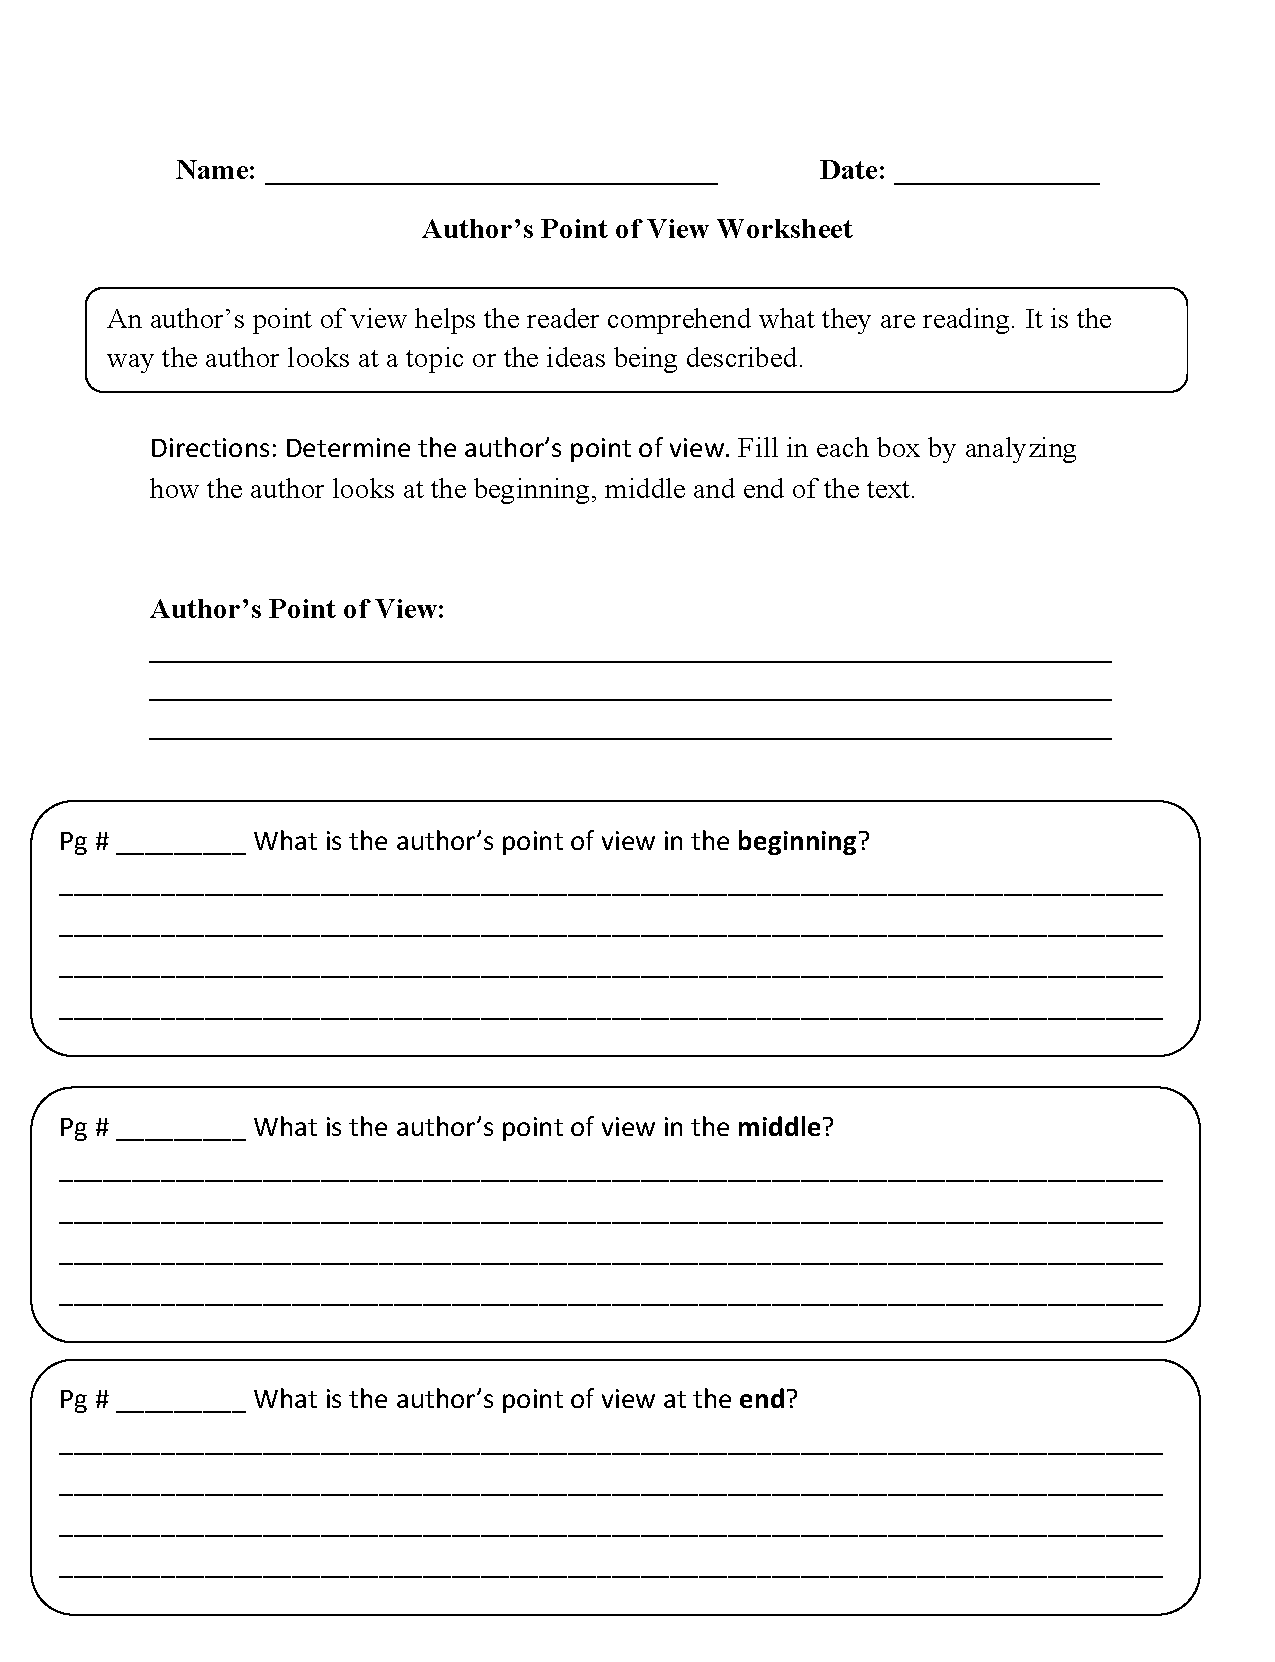 Weirdmailus  Outstanding Englishlinxcom  Point Of View Worksheets With Luxury Point Of View Worksheets With Alluring Worksheet Rhyming Words Also Chemistry Unit  Worksheet  Answers In Addition Similar Triangles Worksheet Grade  And Oppositional Defiant Disorder Worksheets As Well As Parallel Lines And Planes Worksheet Additionally Polygons Worksheet Th Grade From Englishlinxcom With Weirdmailus  Luxury Englishlinxcom  Point Of View Worksheets With Alluring Point Of View Worksheets And Outstanding Worksheet Rhyming Words Also Chemistry Unit  Worksheet  Answers In Addition Similar Triangles Worksheet Grade  From Englishlinxcom